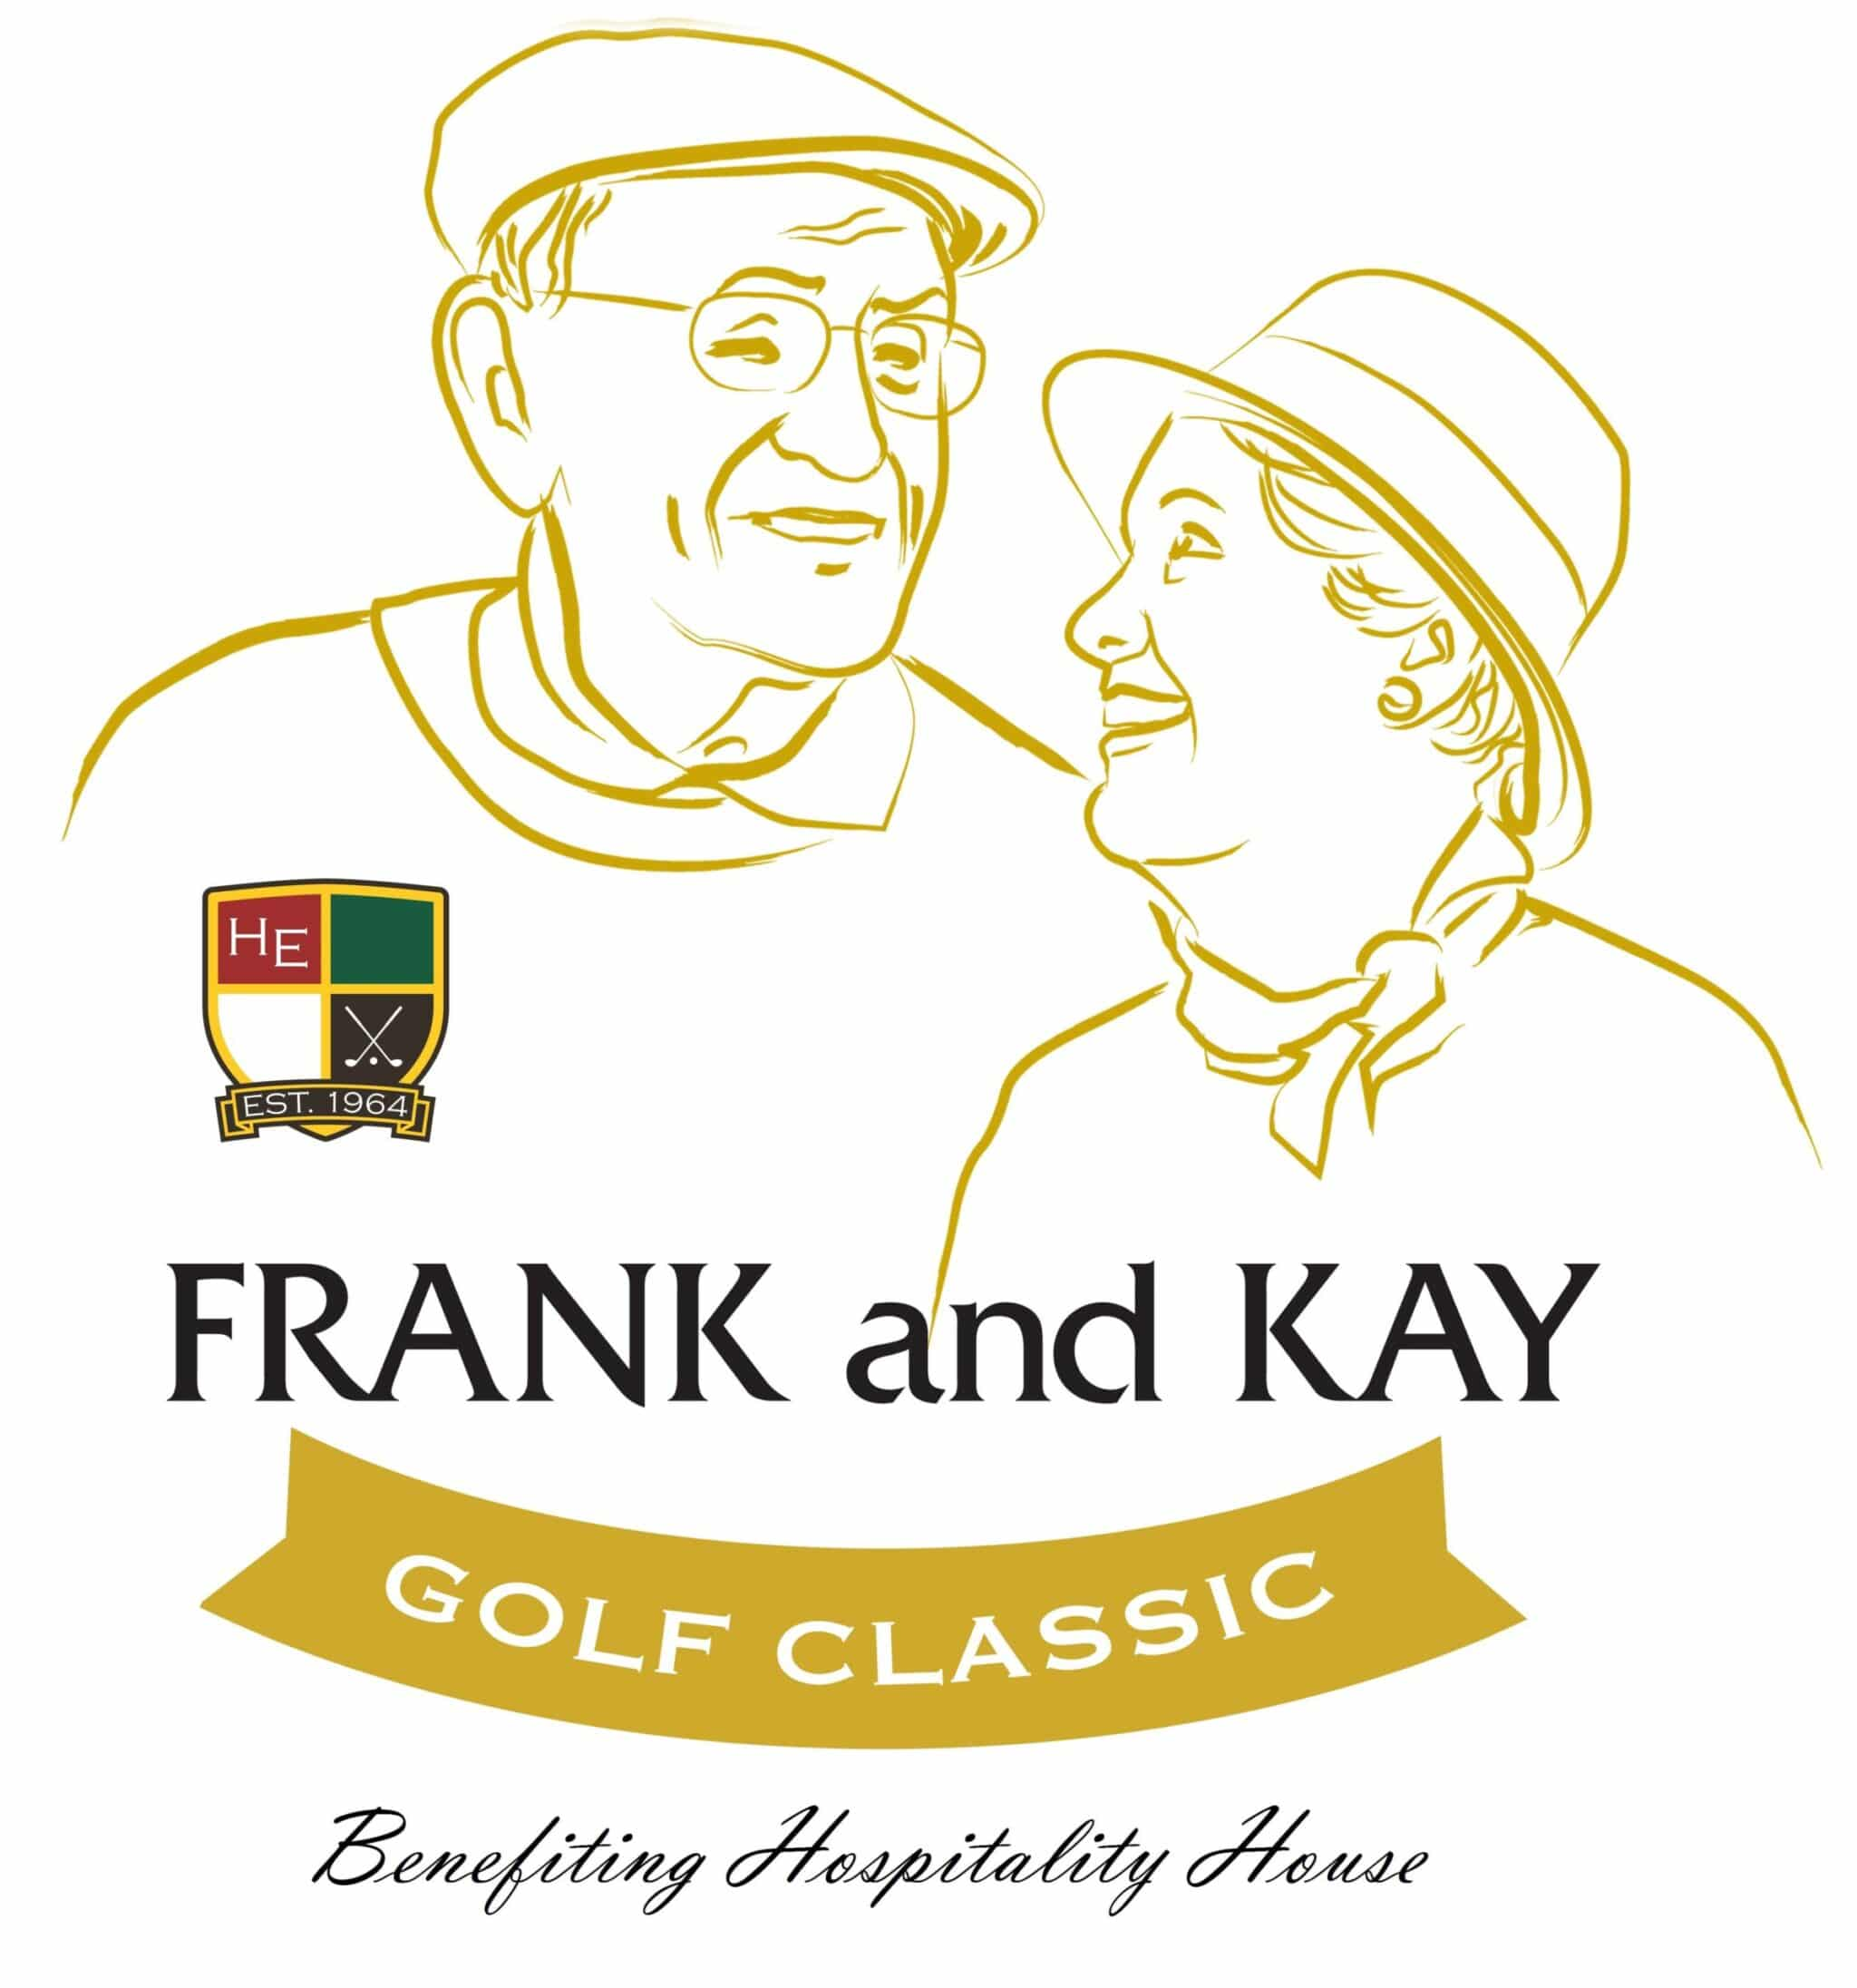 Frank and Kay Golf Classic Returning to Hound Ears Club